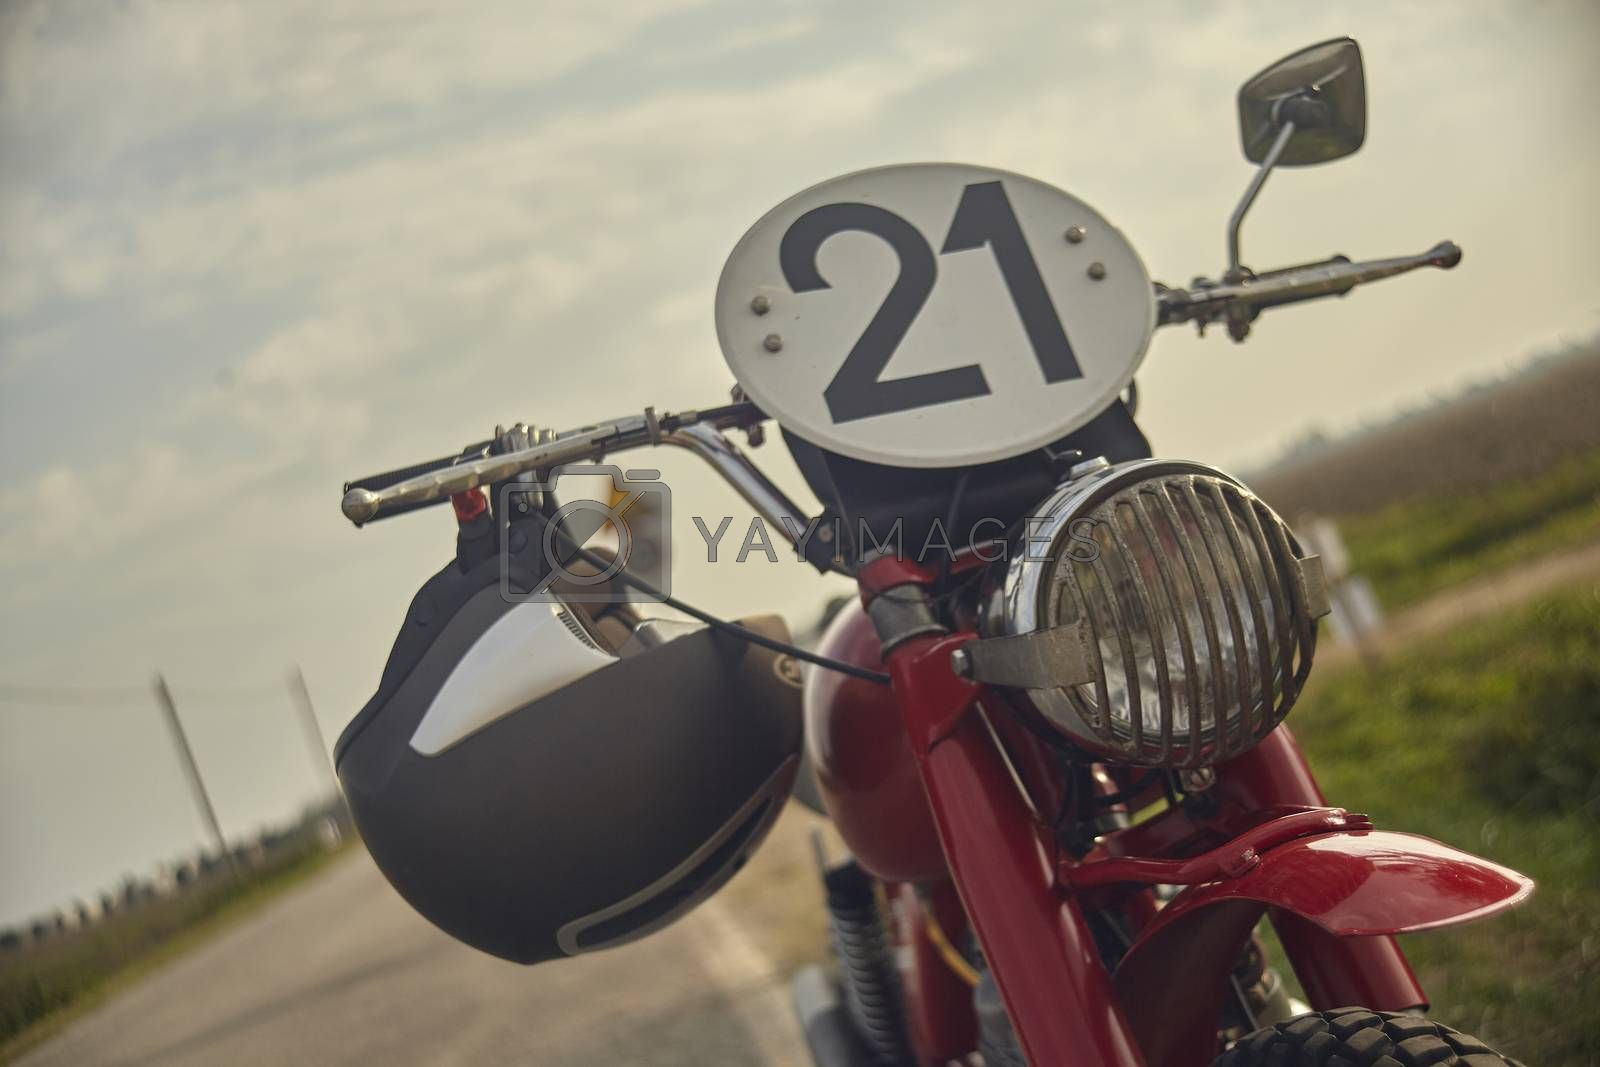 Detail of the front and handlebars of a very old cross bike with the number plate 21